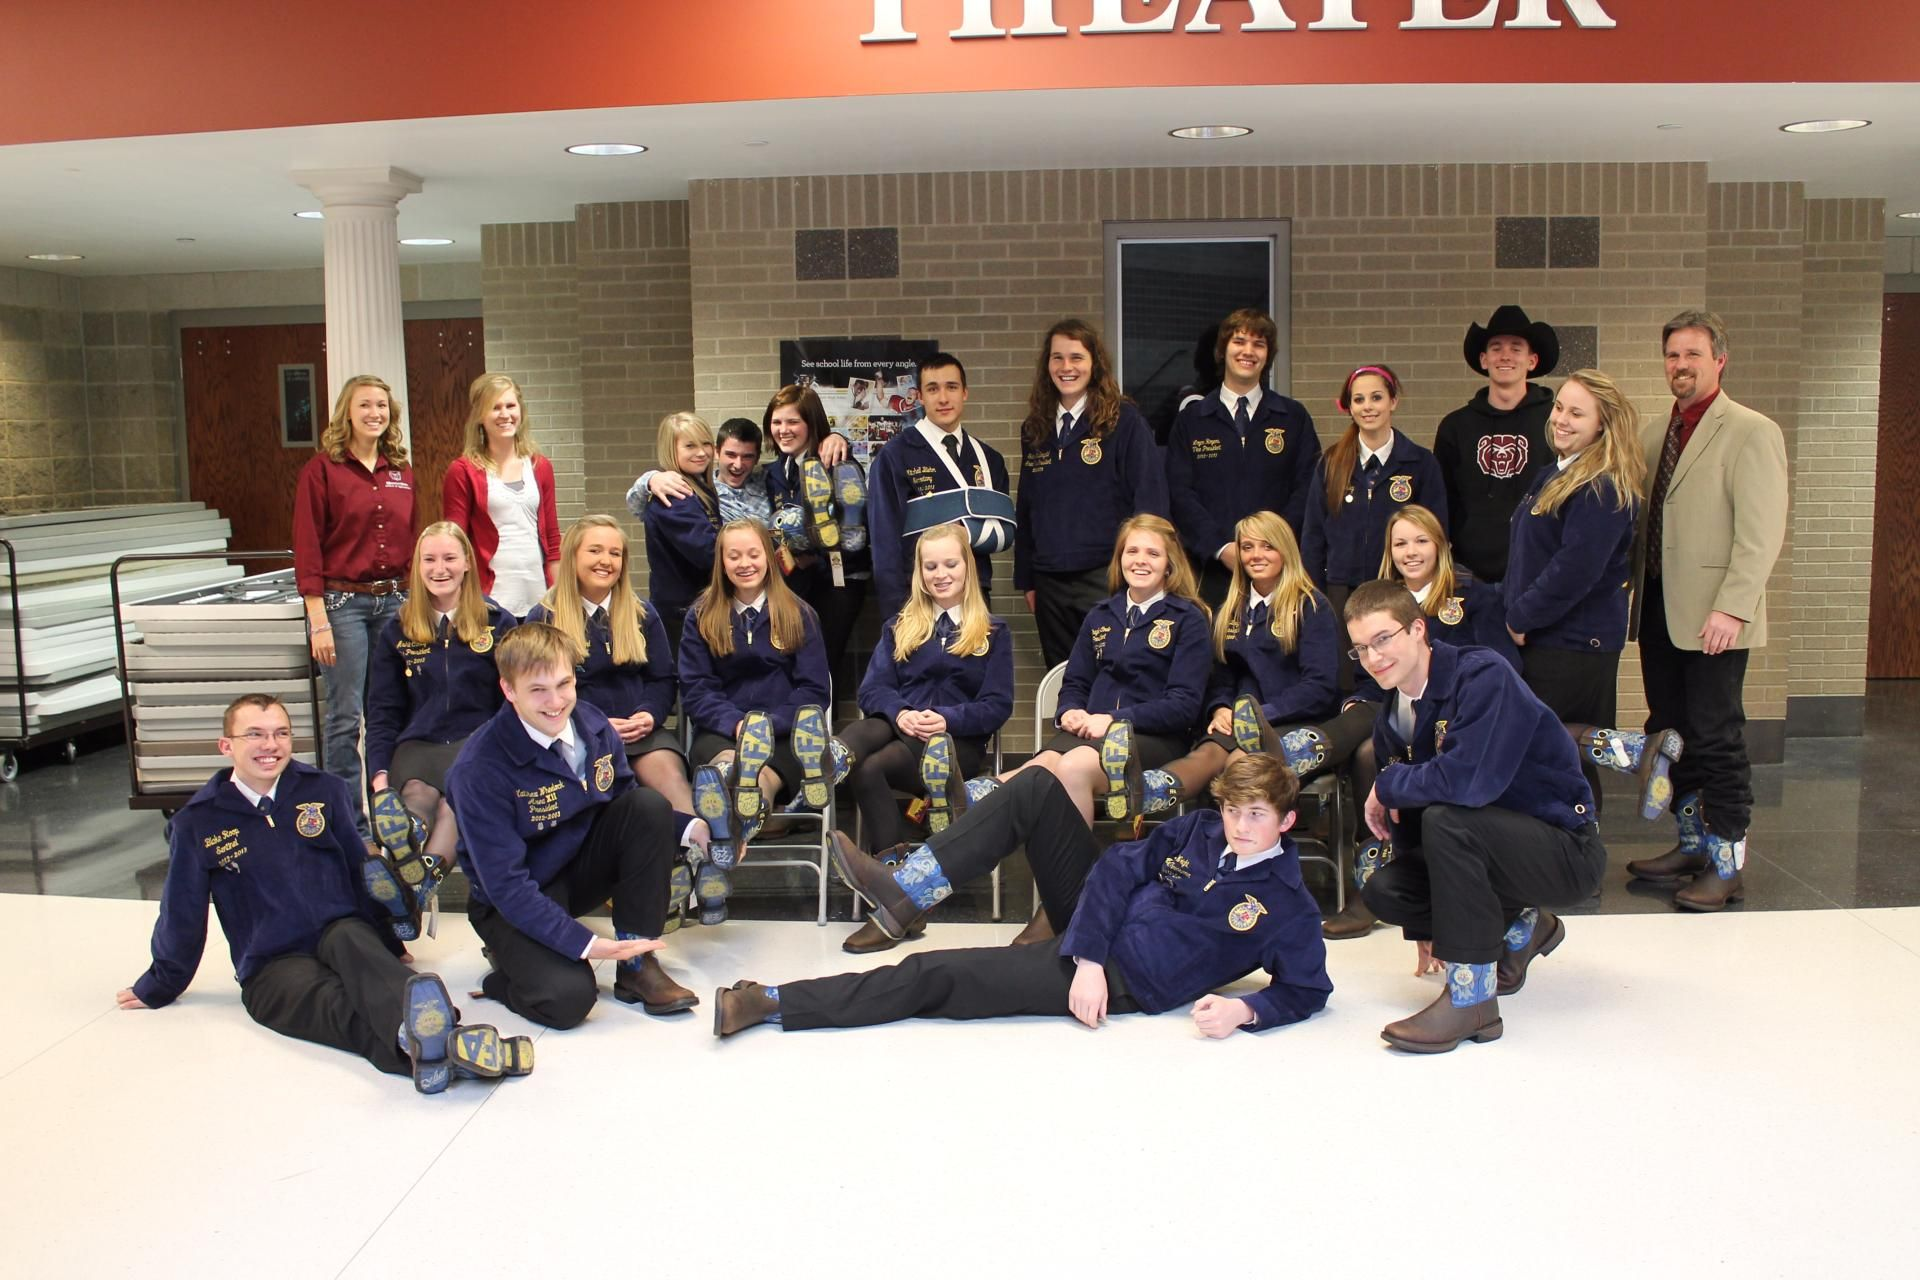 Ffa historic moments ffa student created in this moment